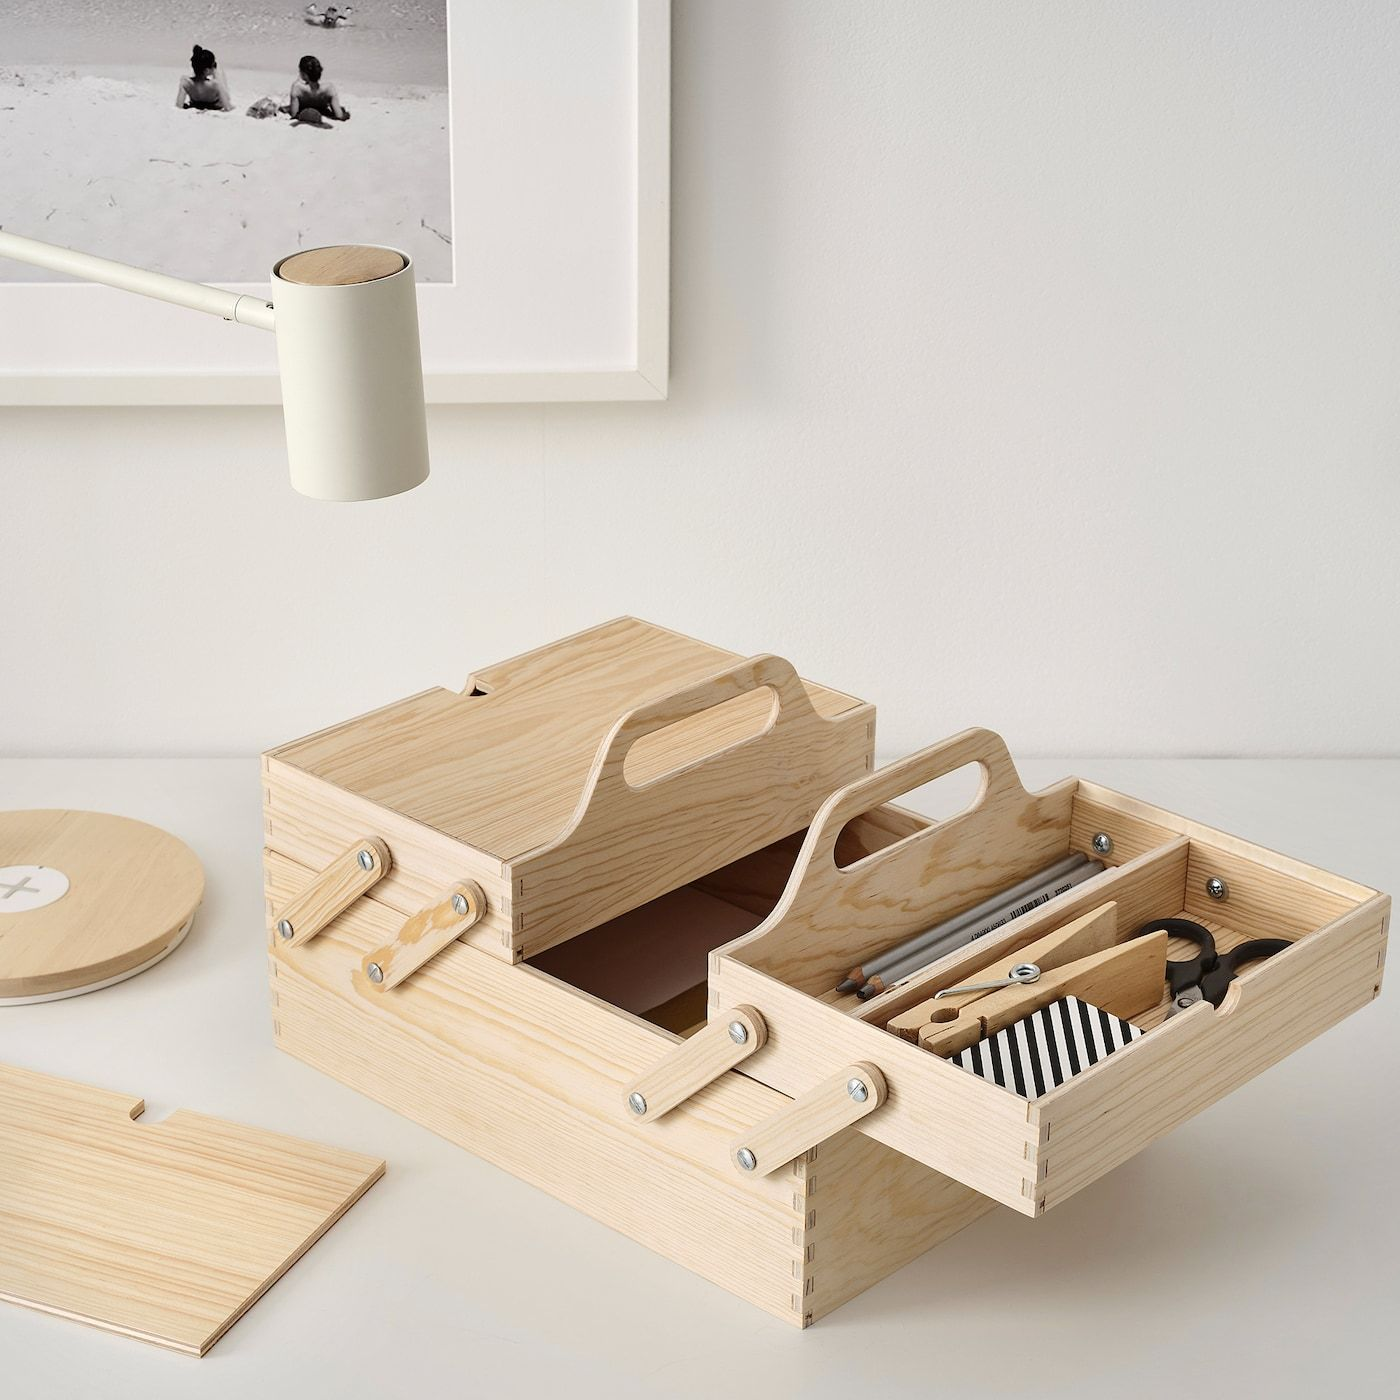 Klammemacka Desk Organizer Natural Plywood Ikea In 2020 Desk Organization Desk Organization Ikea Diy Desk Accessories